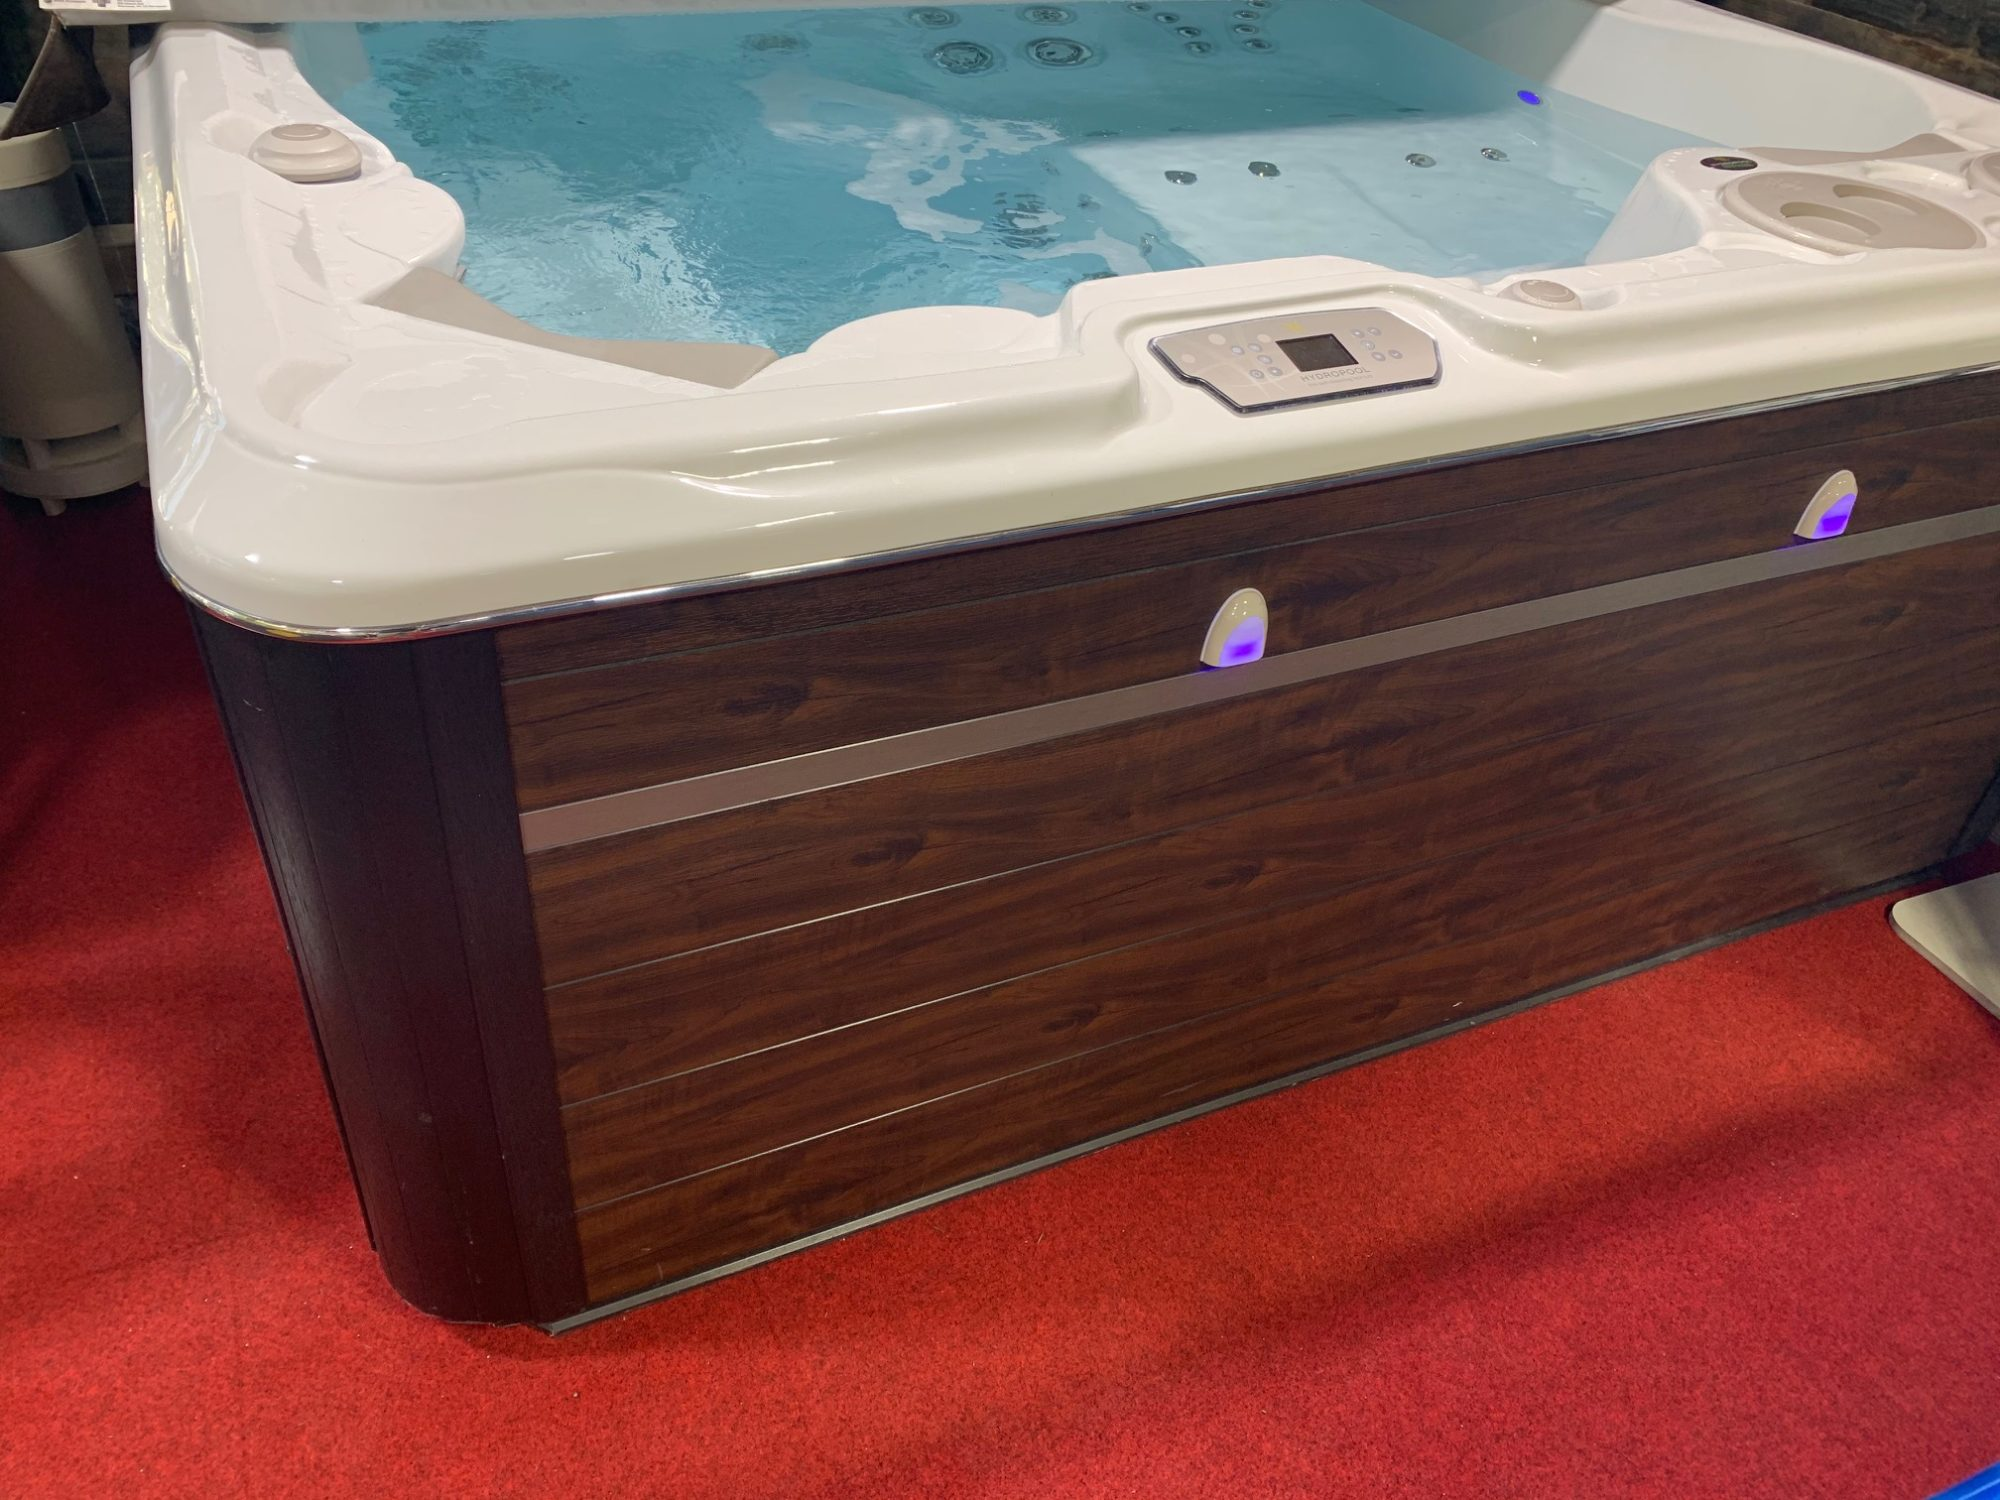 Ex display Self-cleaning Hot Tub 790